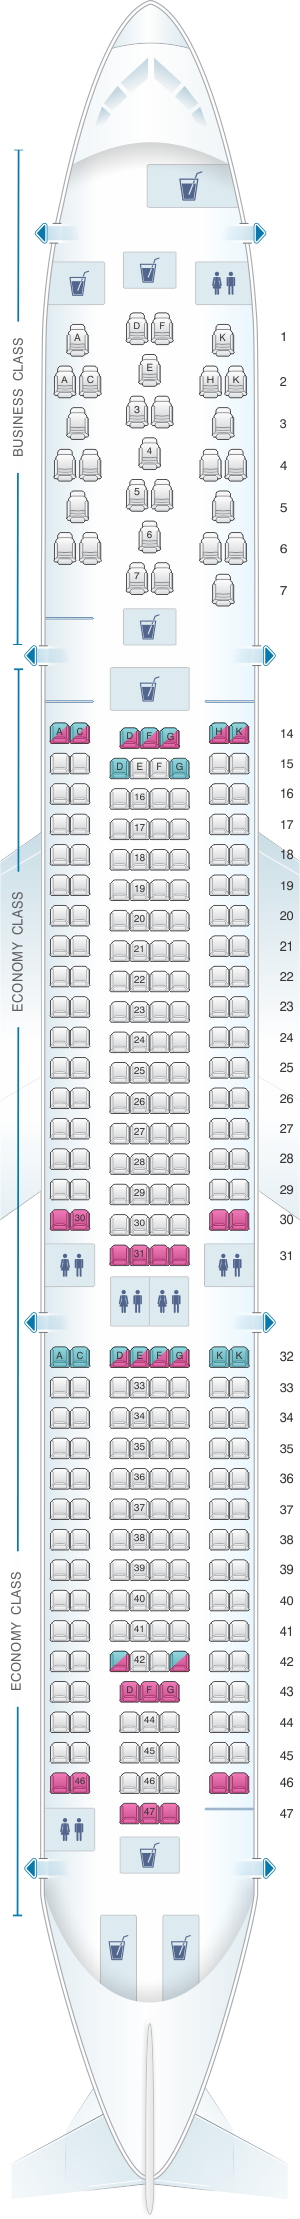 Seat map for Brussels Airlines Airbus A330 300